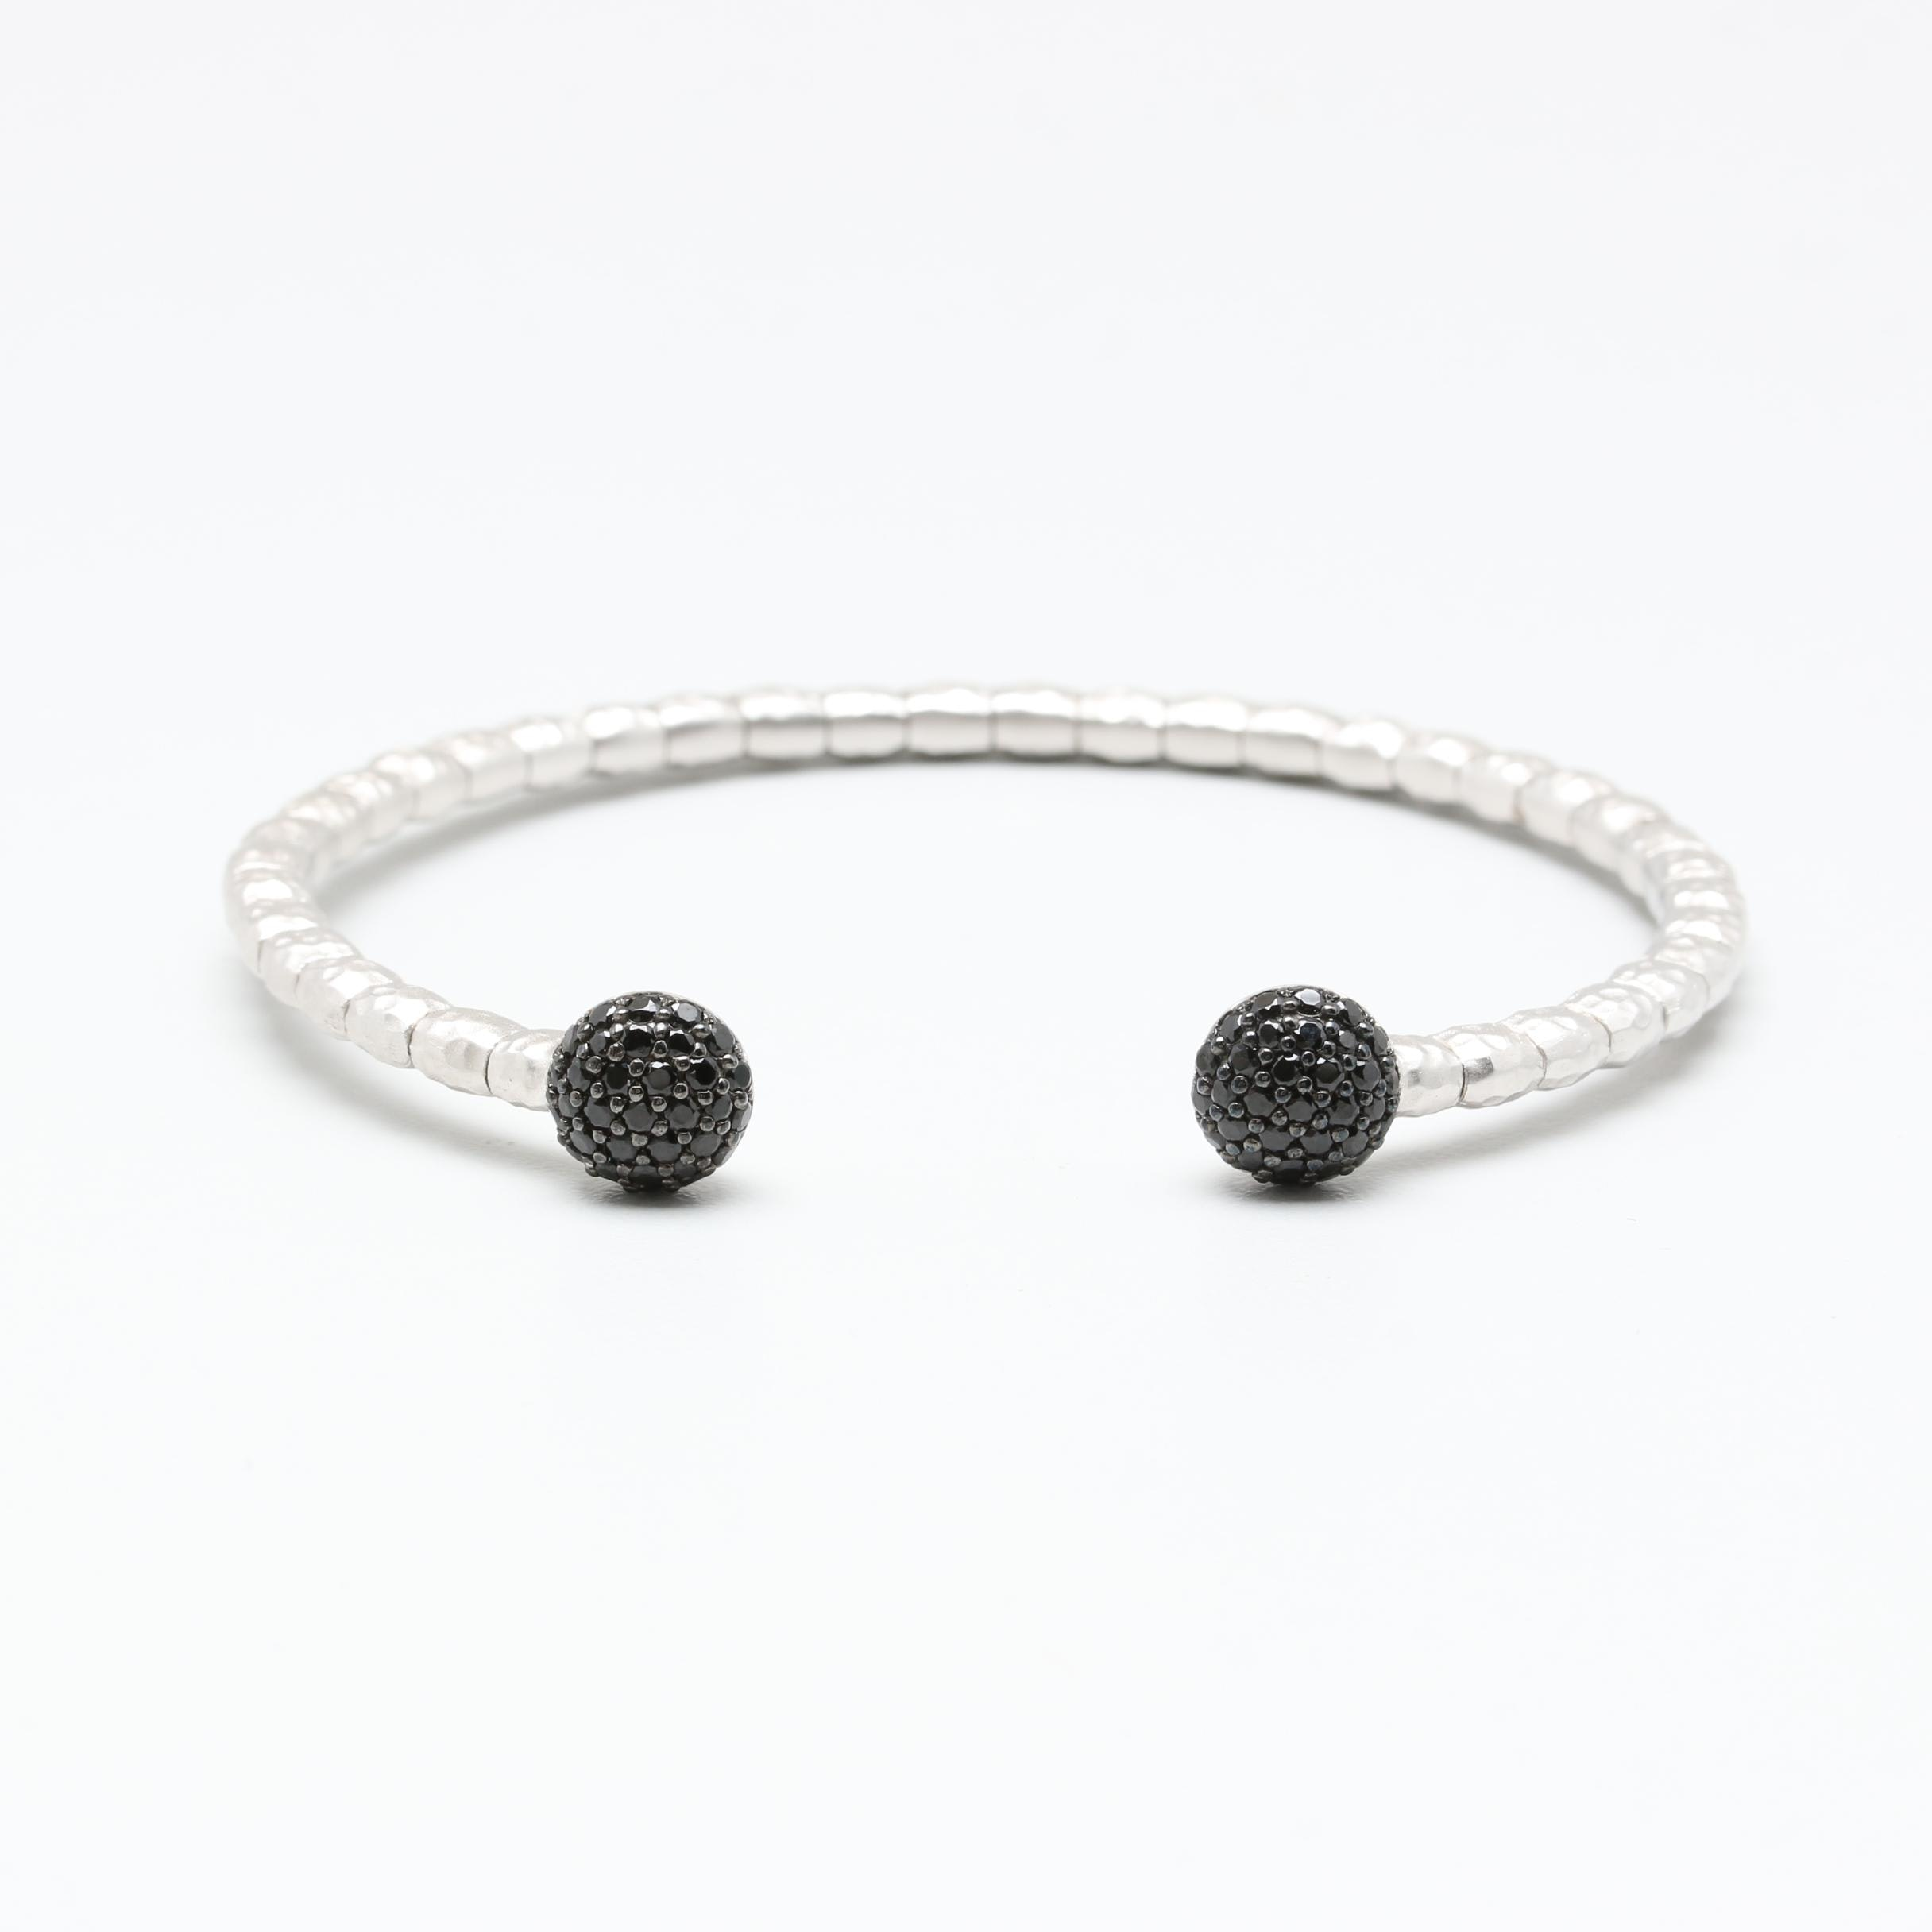 Sterling Silver and Stainless Steel Black Spinel Flex Fit Cuff